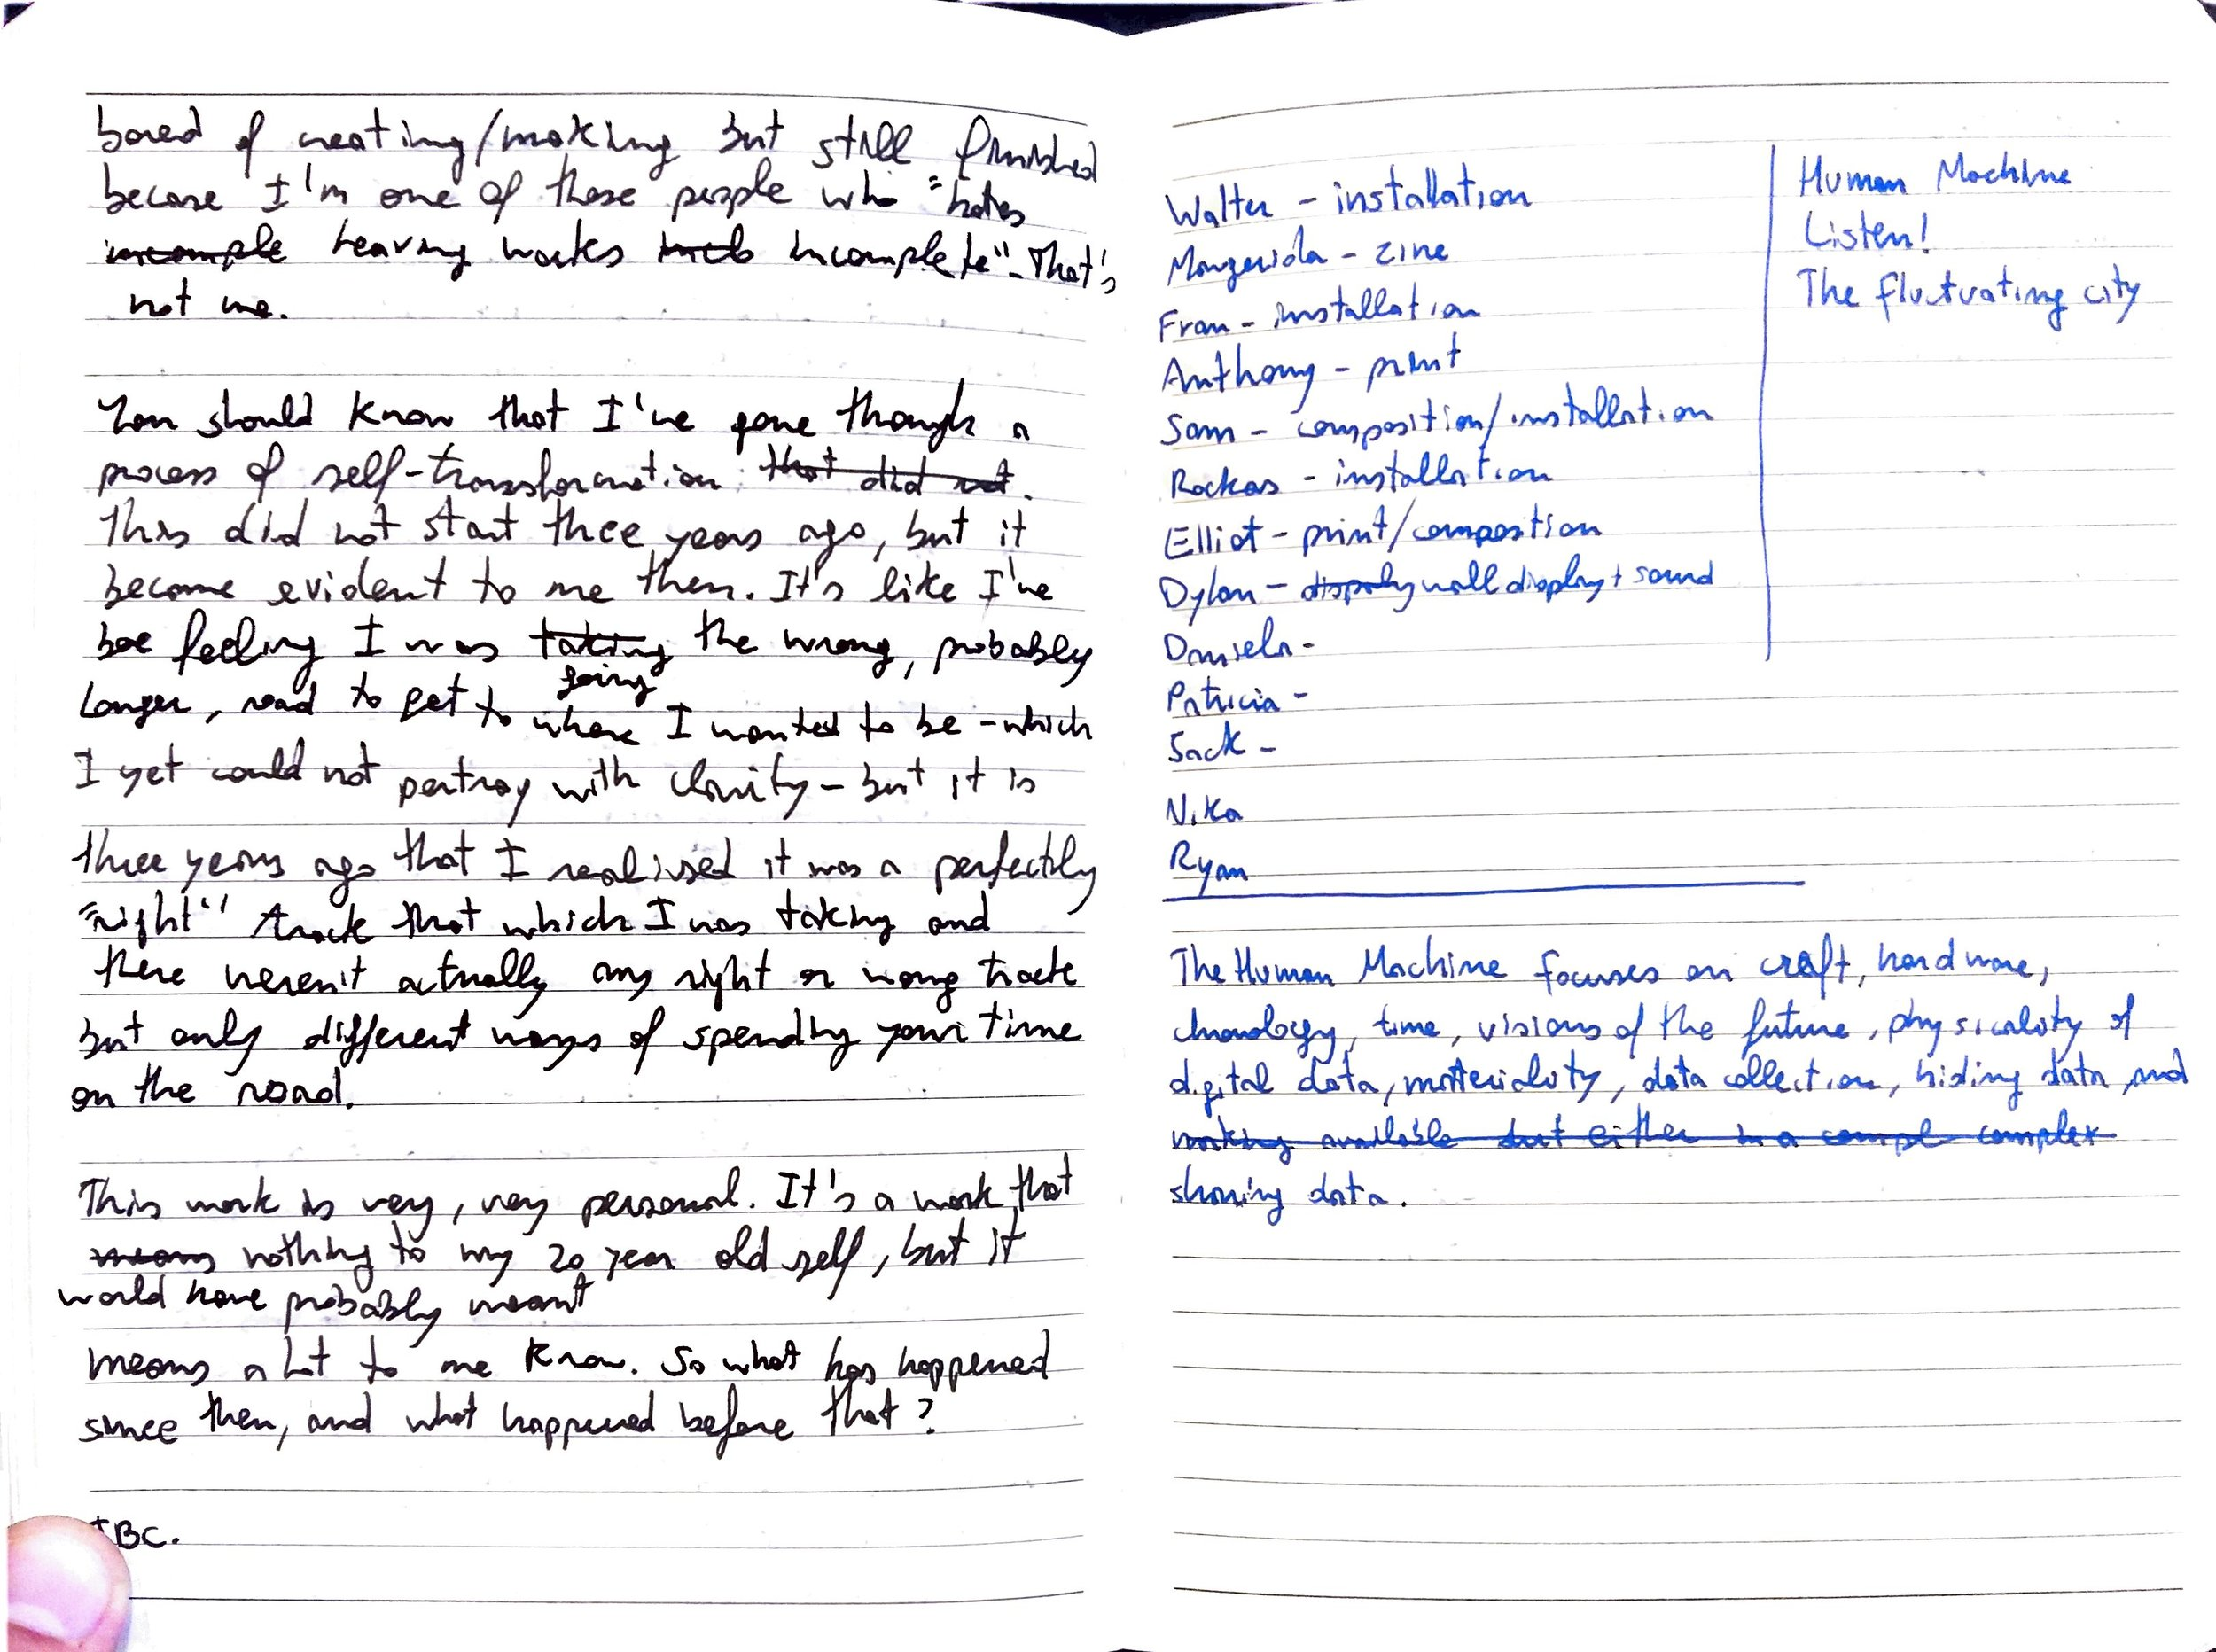 black and pink notebooks_Page_55_Image_0001.jpg